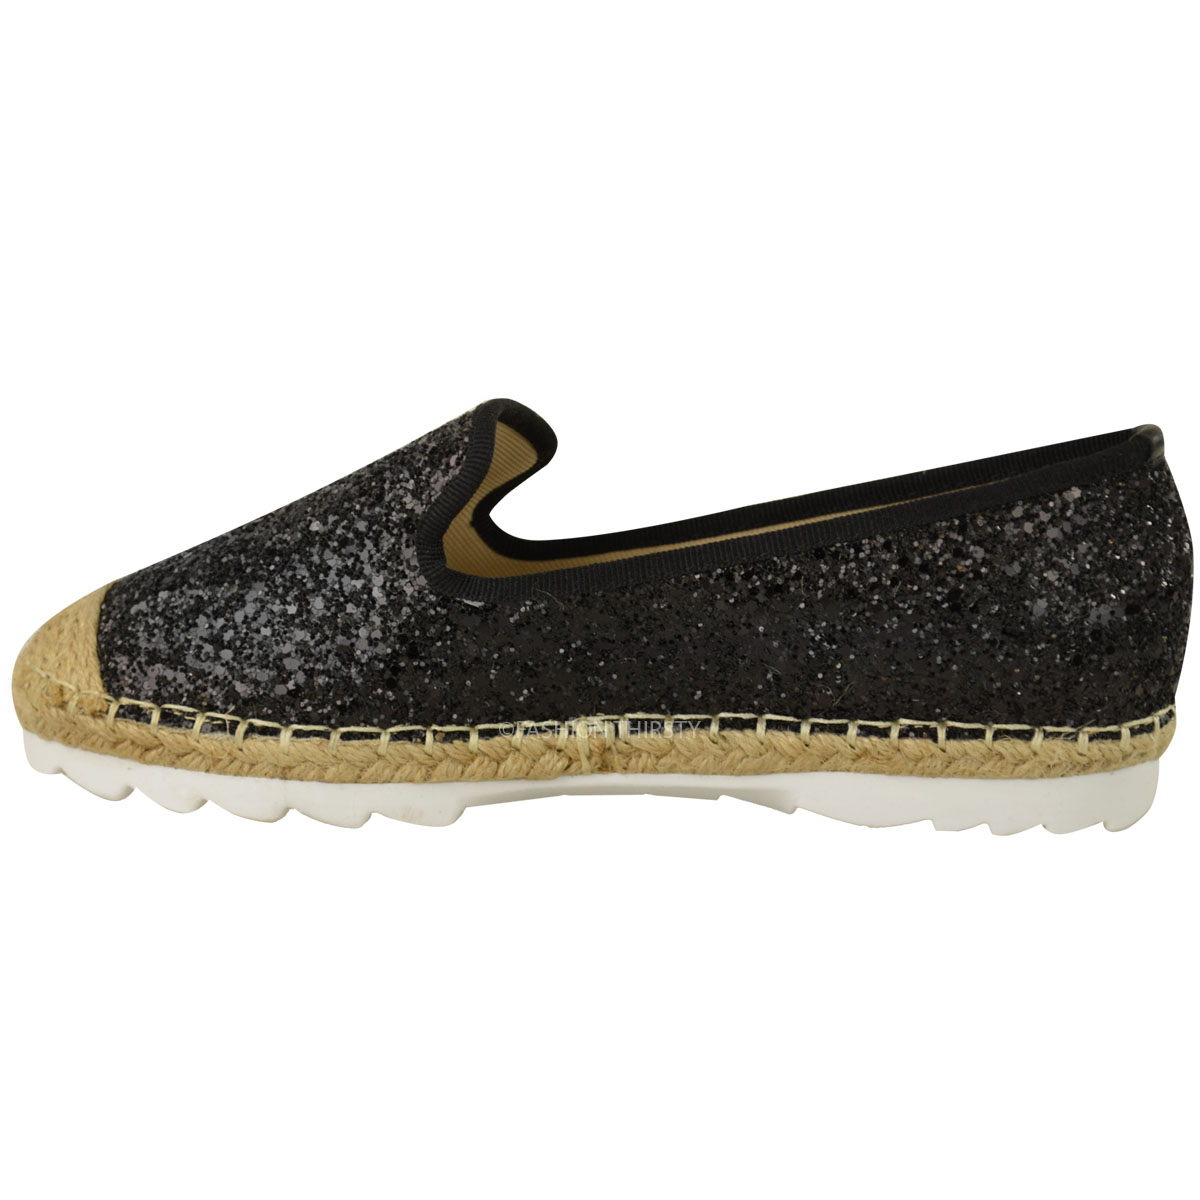 womens ladies flat shoes espadrilles casual holiday comfort glitter shimmer size ebay. Black Bedroom Furniture Sets. Home Design Ideas